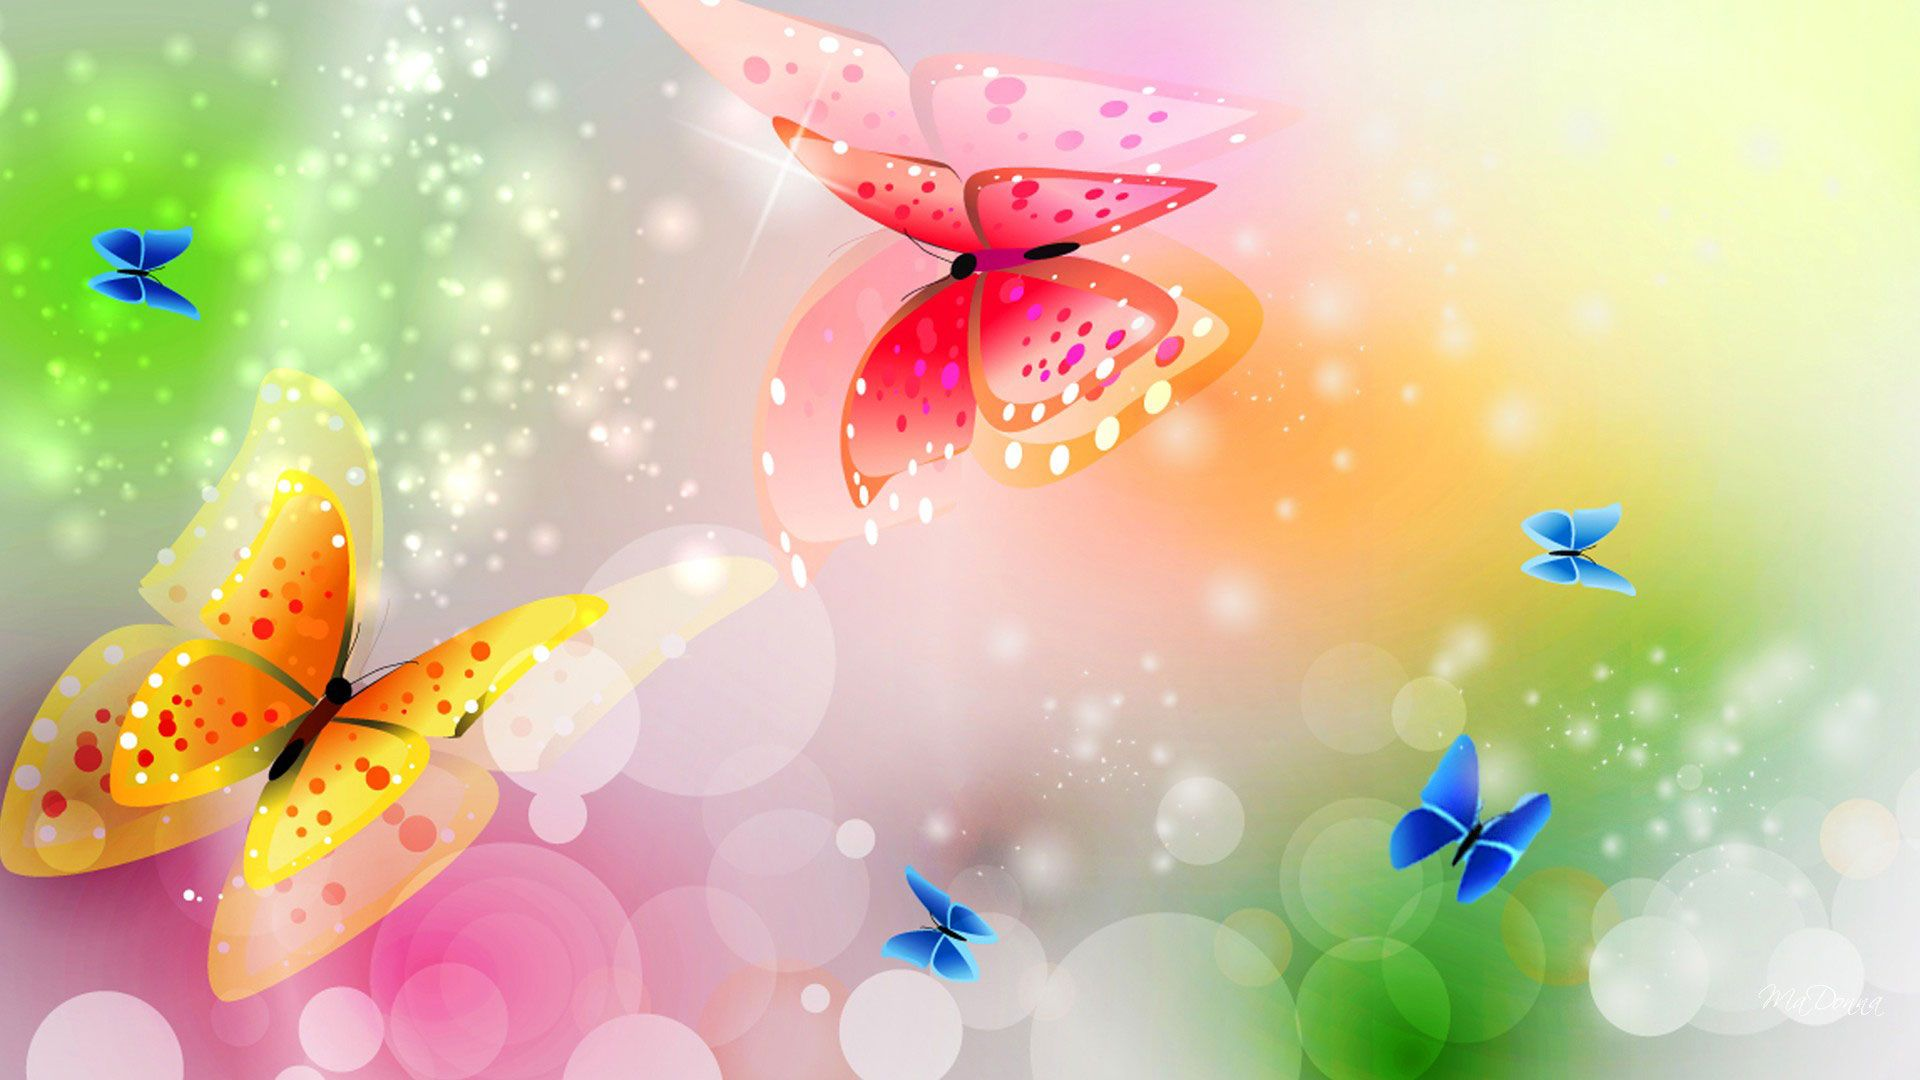 Hd Pics Photos Beautiful Attractive Animated Butterfly Quality Desktop Background Wallpaper